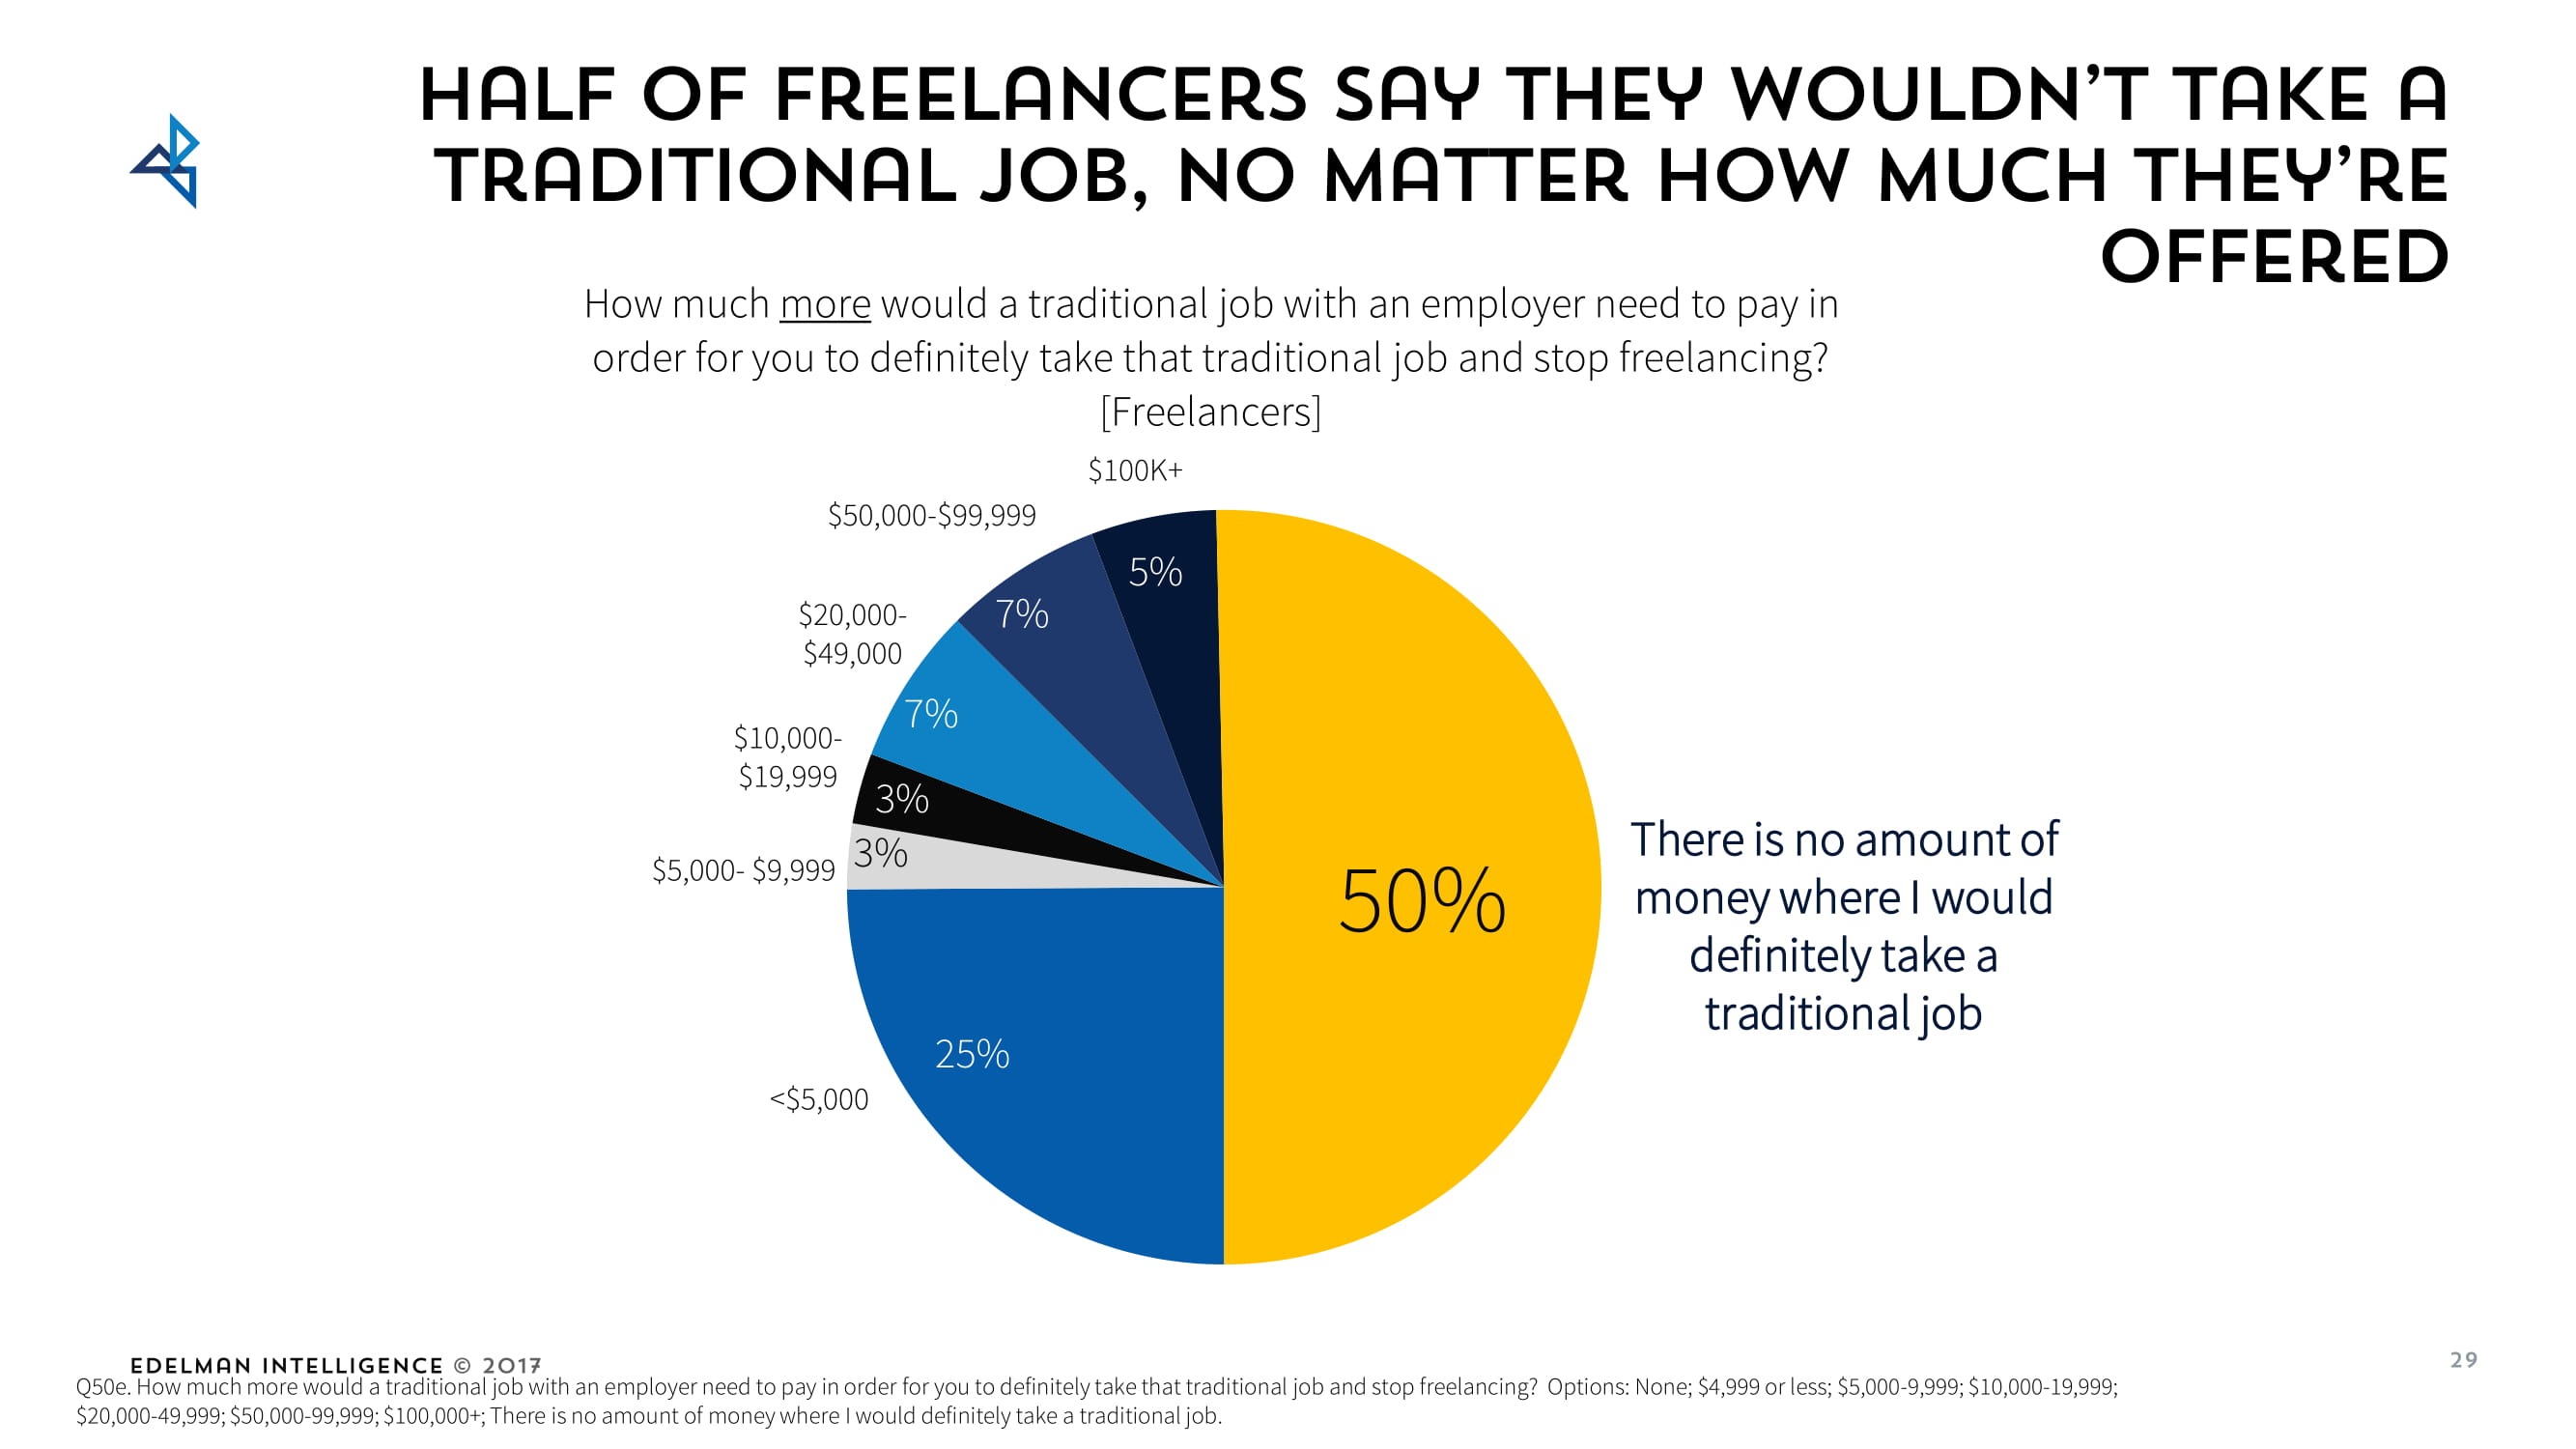 Existing freelancers won't go back to doing a traditional job